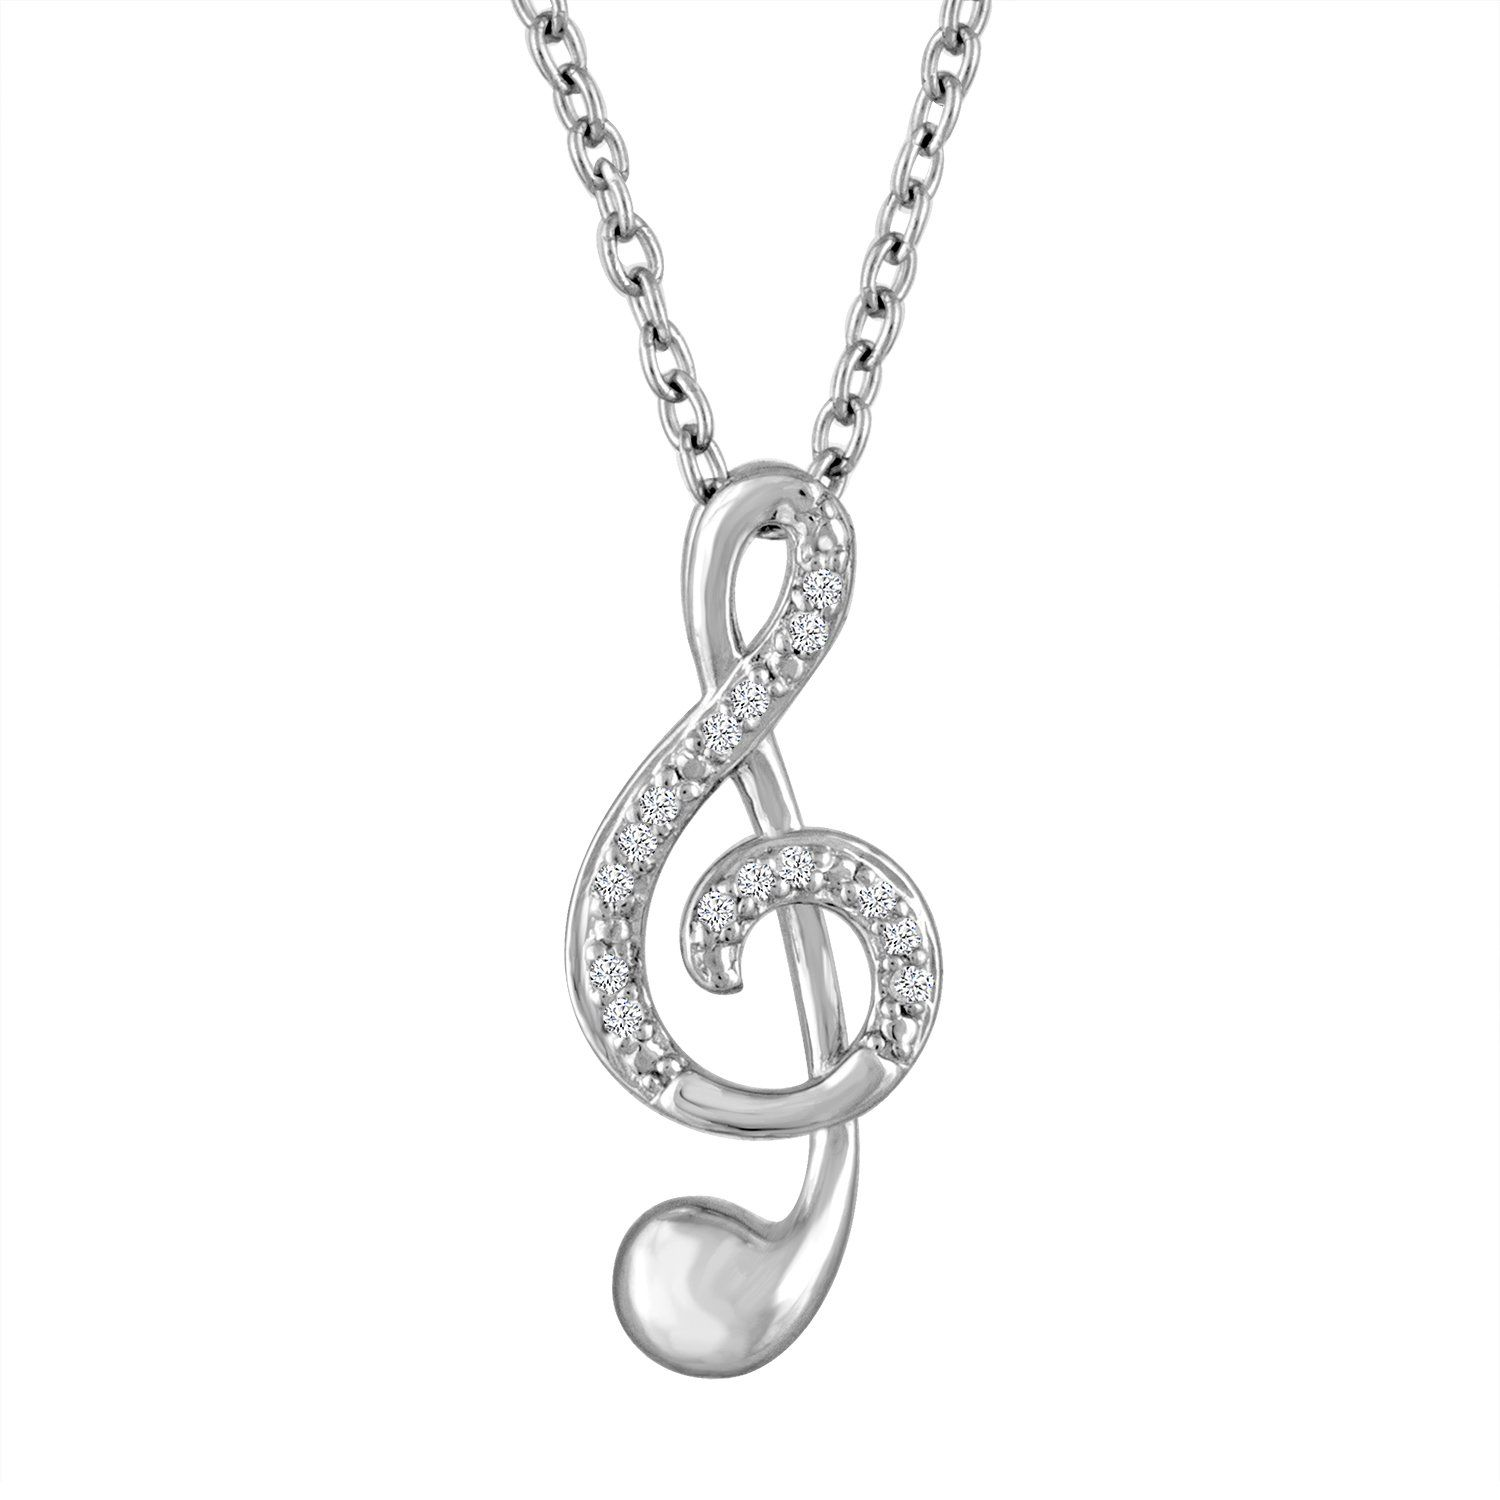 hop pendant rocker in hip wholesale with singer product steel vocalist hand necklace musician fashion star stainless lockets lover jewelry microphone music choir silver